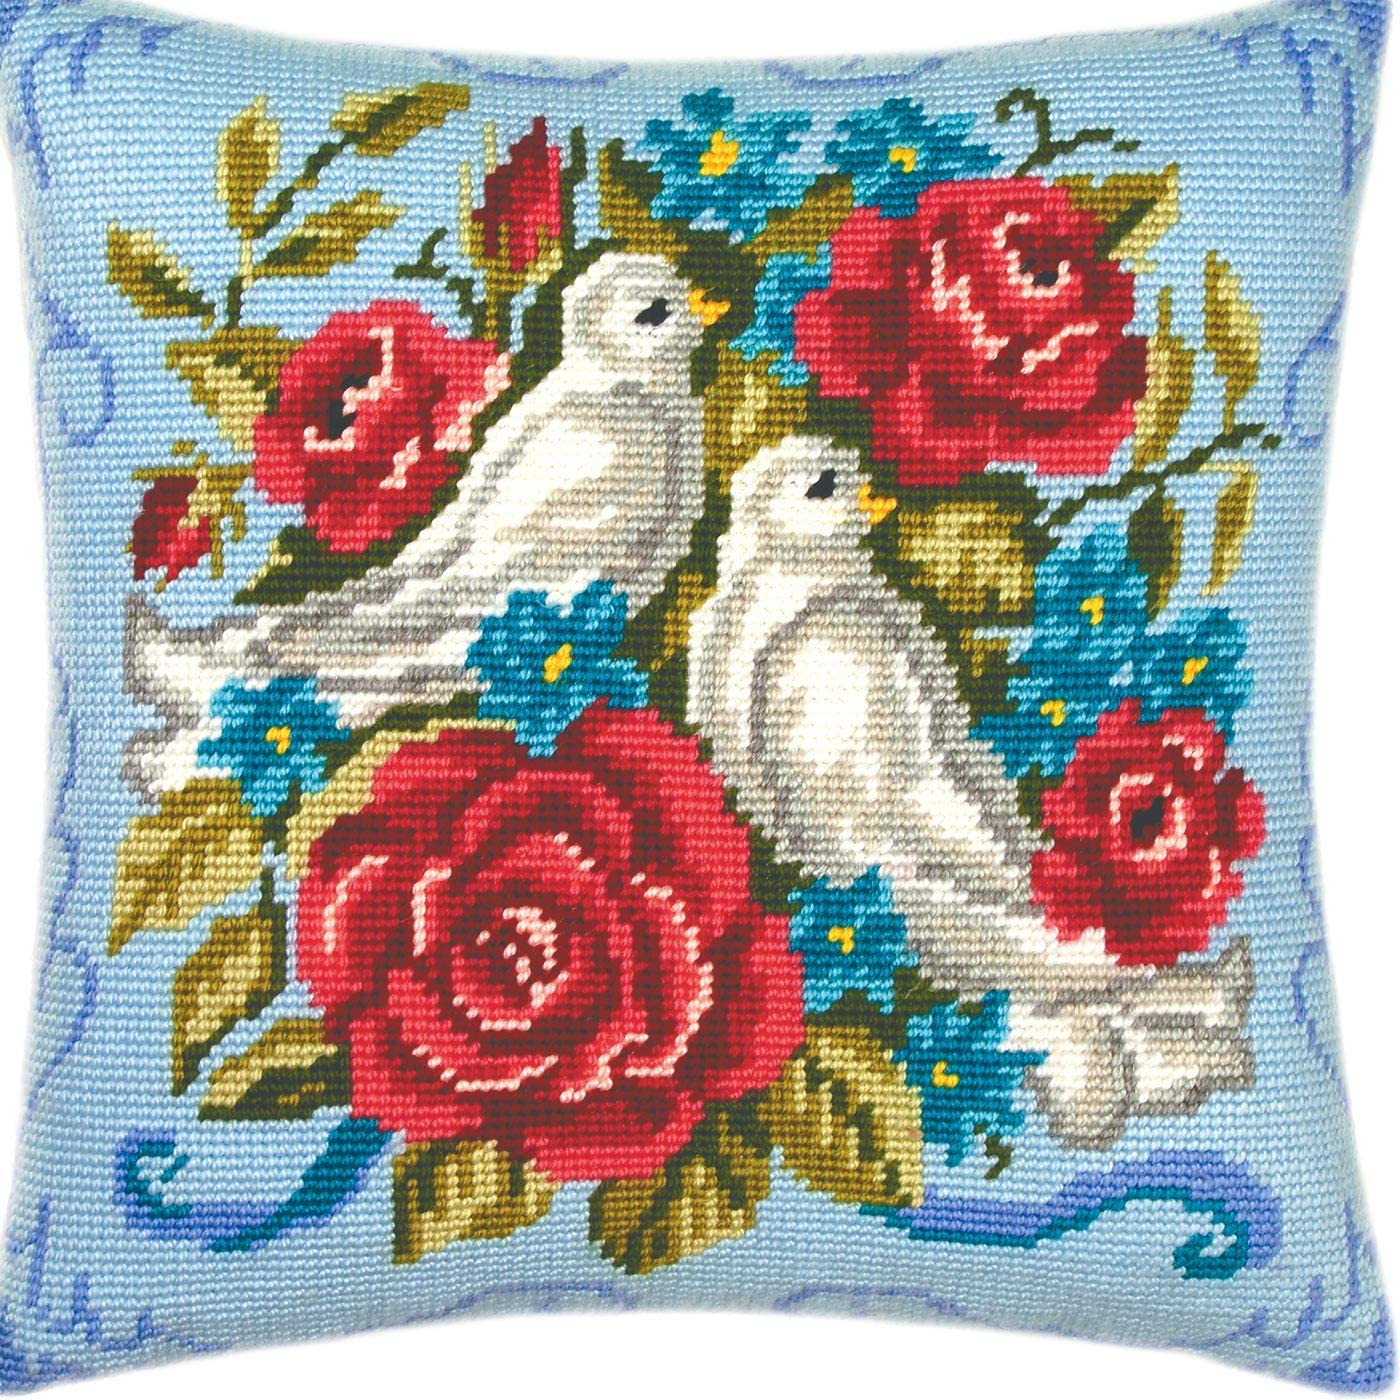 Pigeons. Max 77% OFF Needlepoint Kit. Throw Inches. SEAL limited product Printed Pillow 16×16